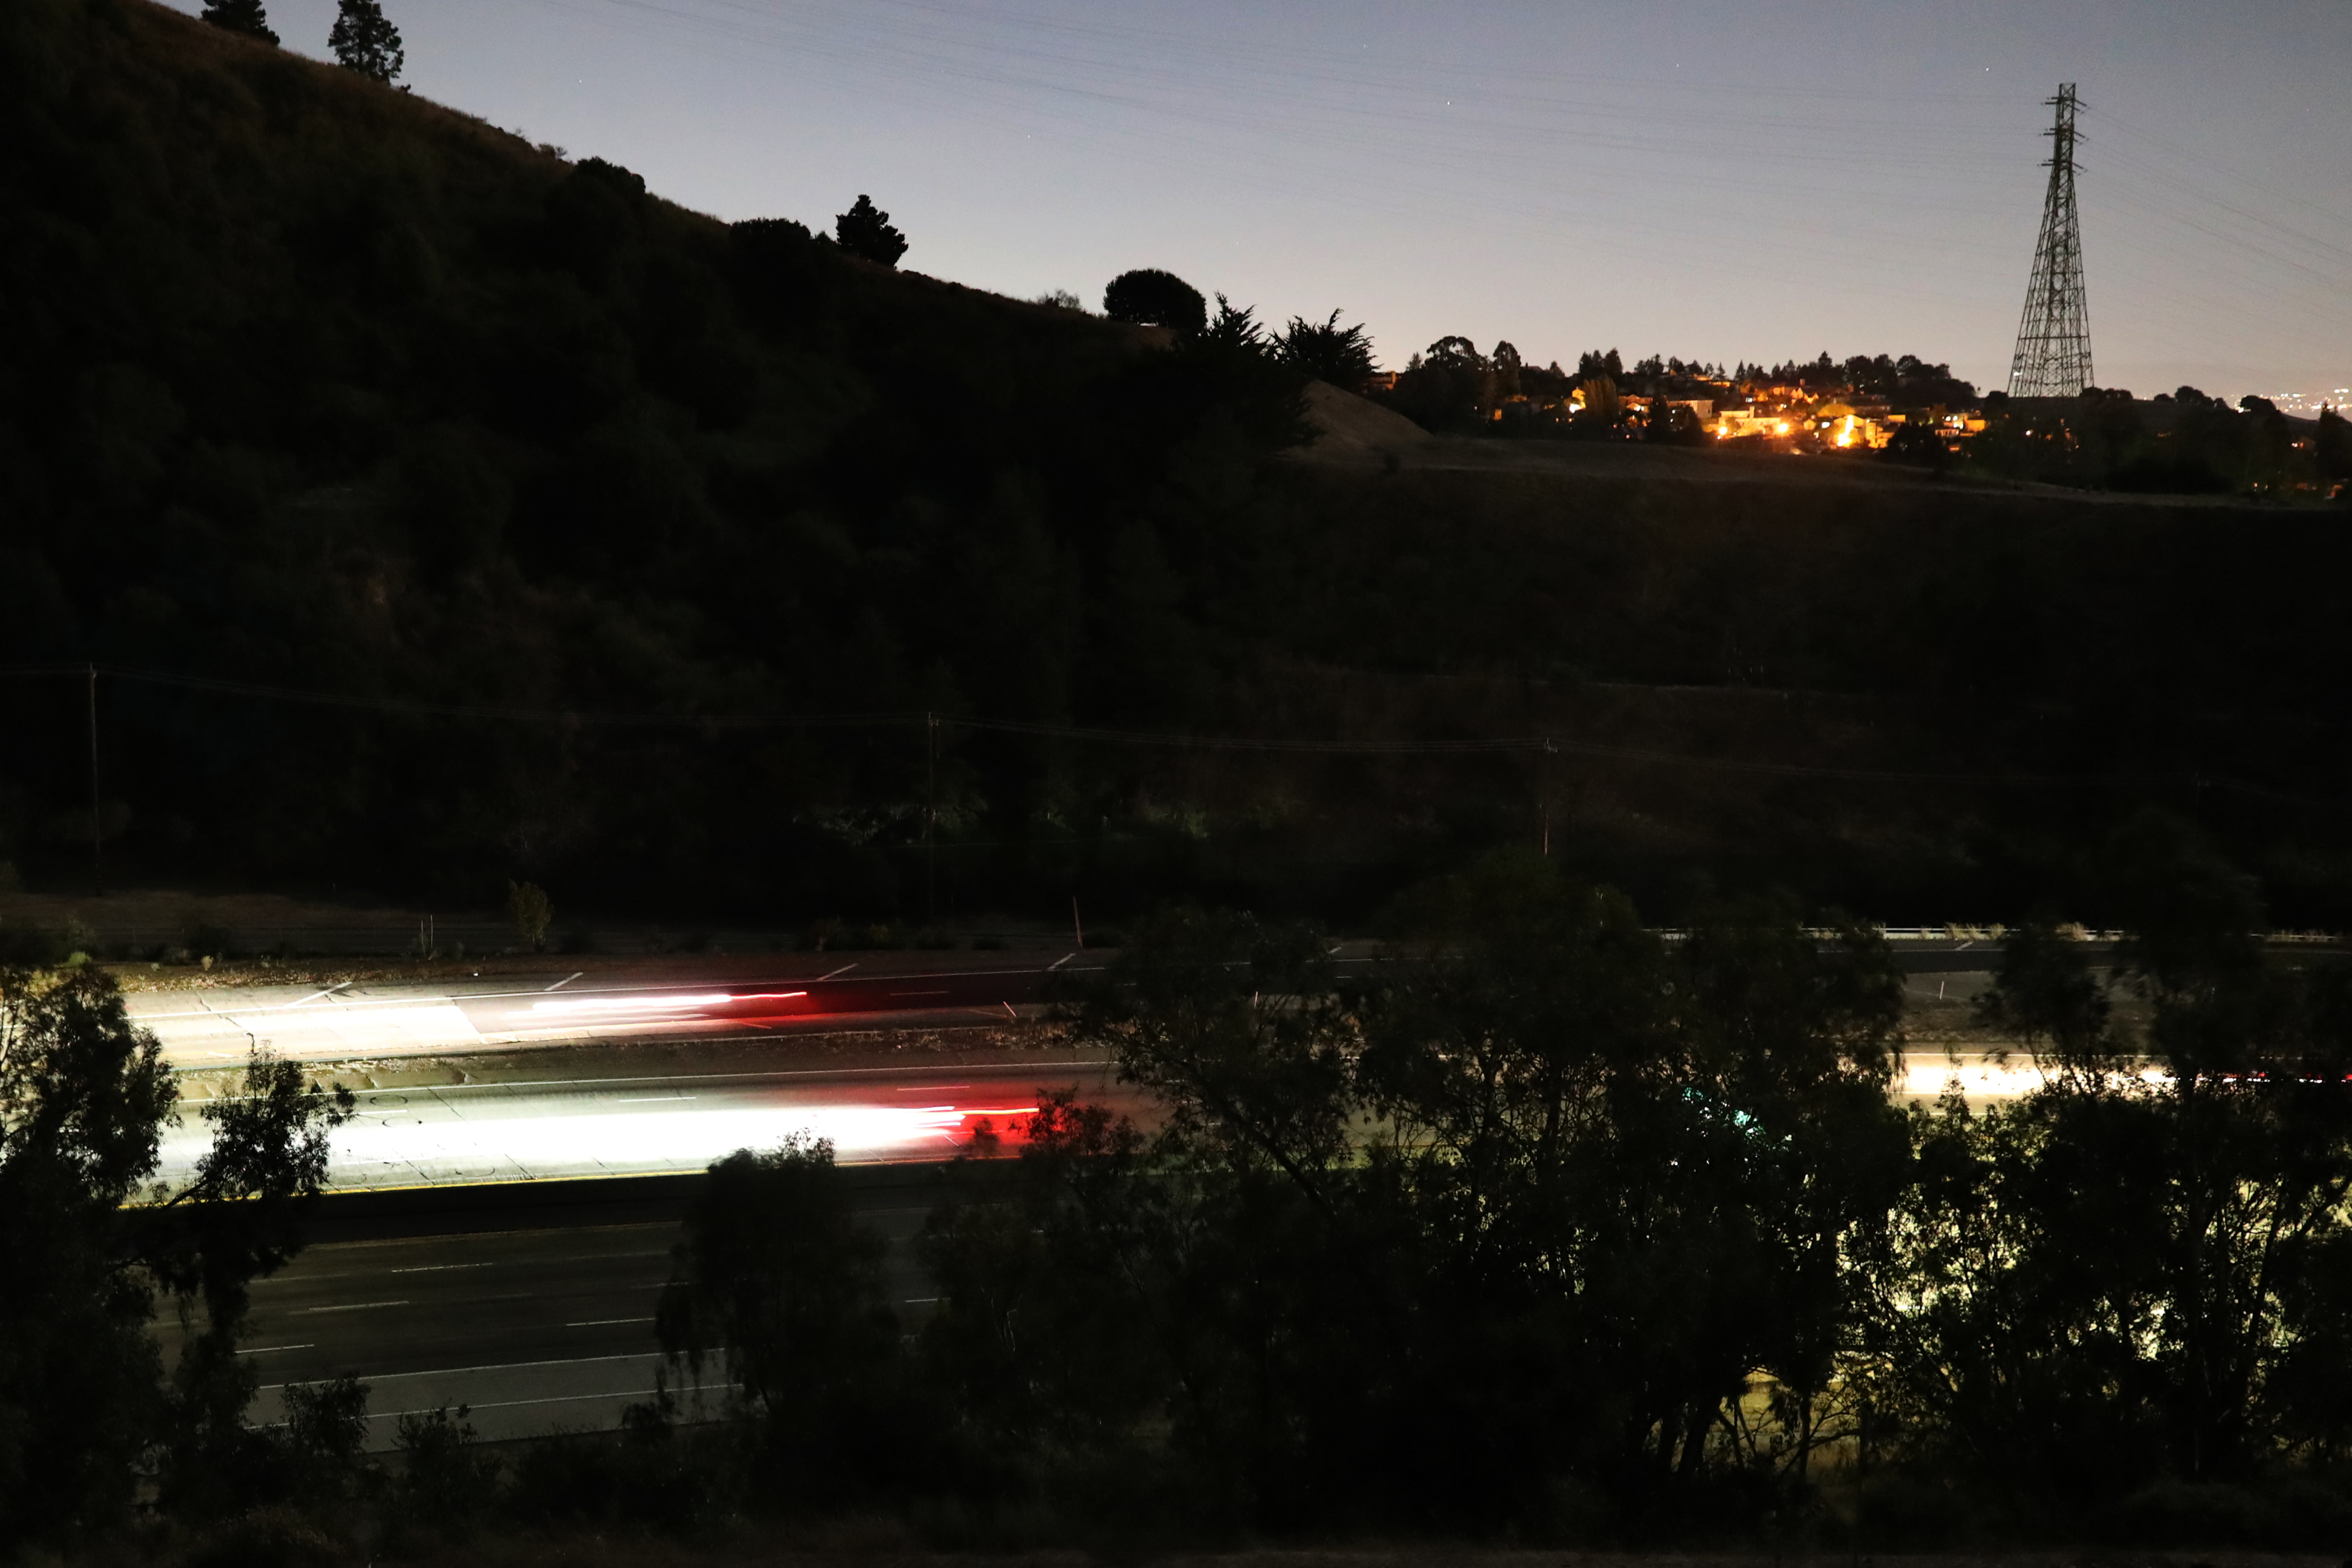 Streaks of lights from vehicles drive along highway 24 during the PG&E power outage in Oakland.